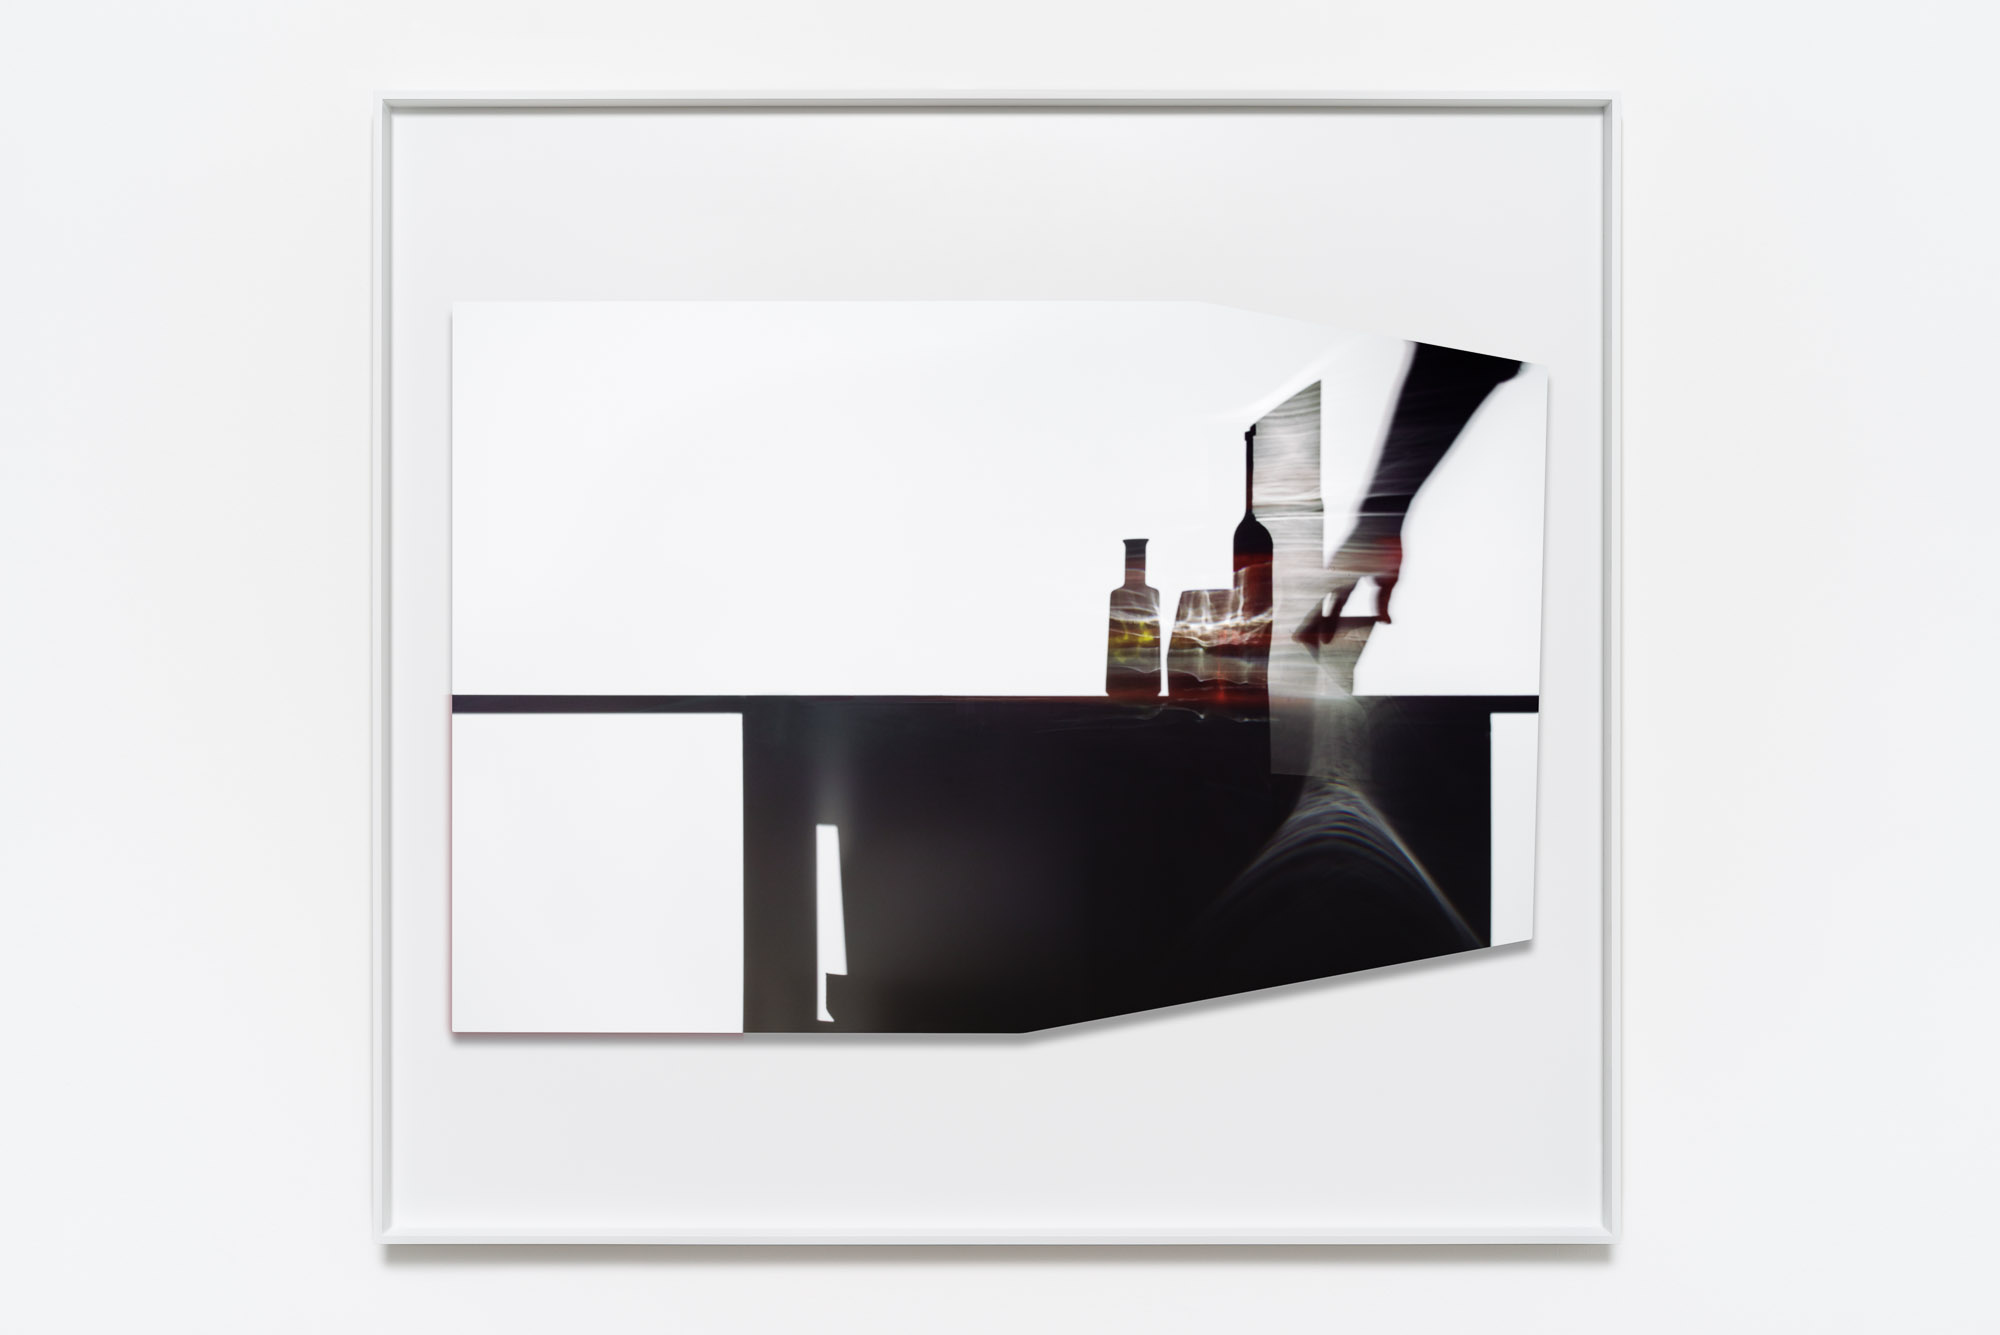 """Uta Barth, In the Light and Shadow of Morandi (17.01), 2017, 48.75"""" x 52.75"""" x 1.75"""" (framed), edition of 6, 2 APs."""